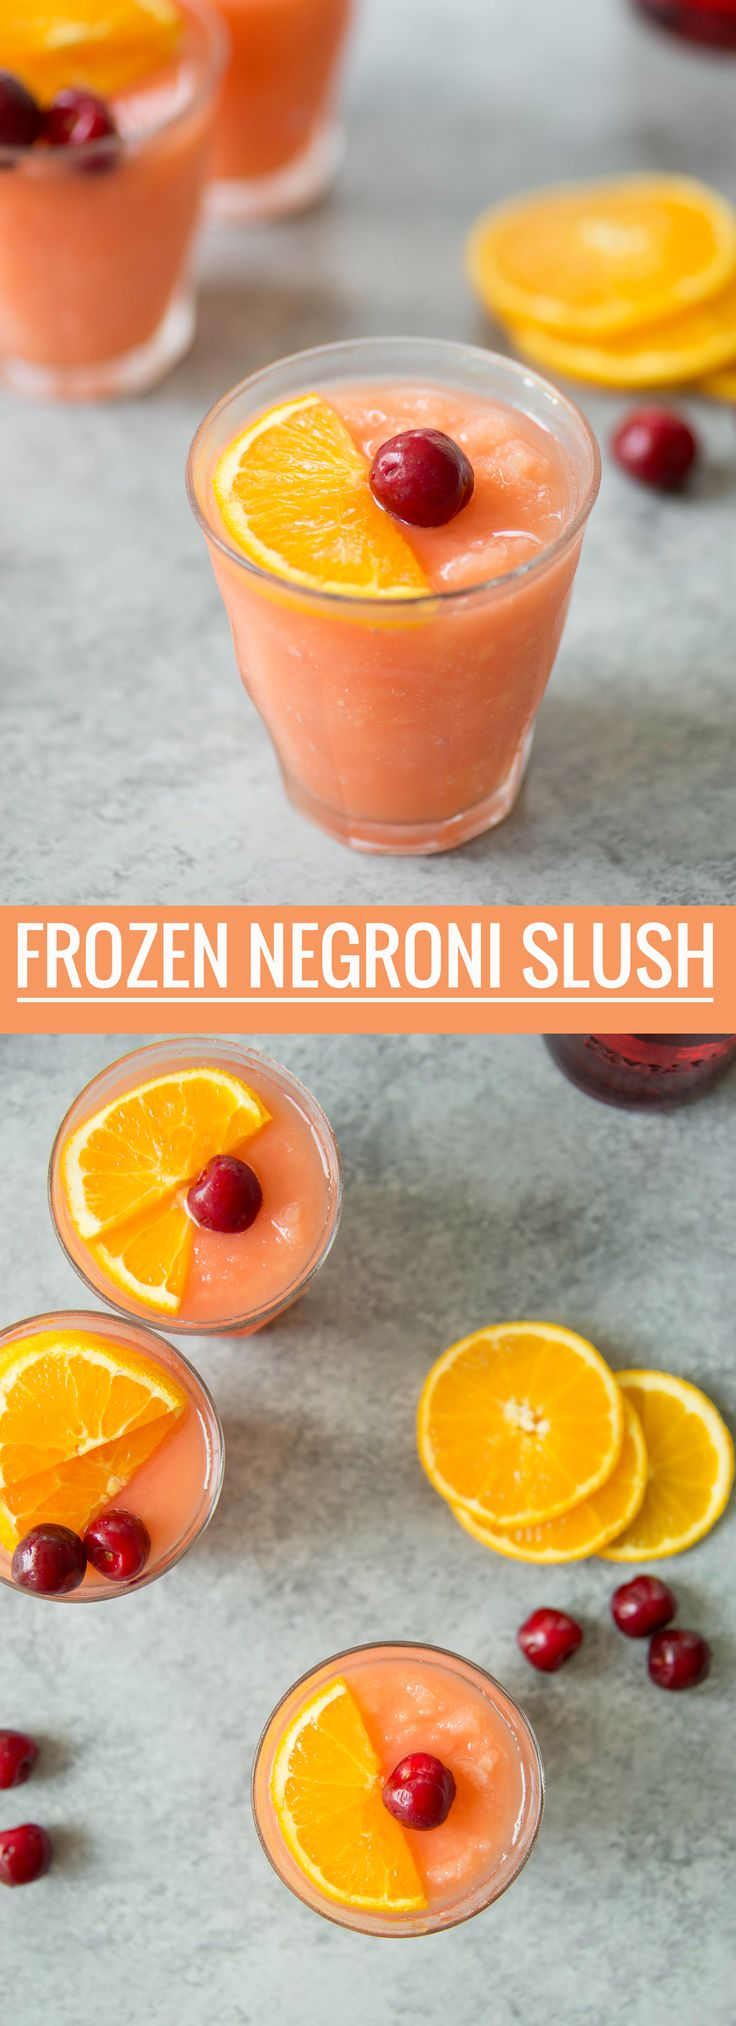 This is THE drink for summer. A frozen orange-ginger negroni slush, perfect for hot days. Campari, gin, vermouth, ginger syrup and orange juice. | www.delishknowledge.com